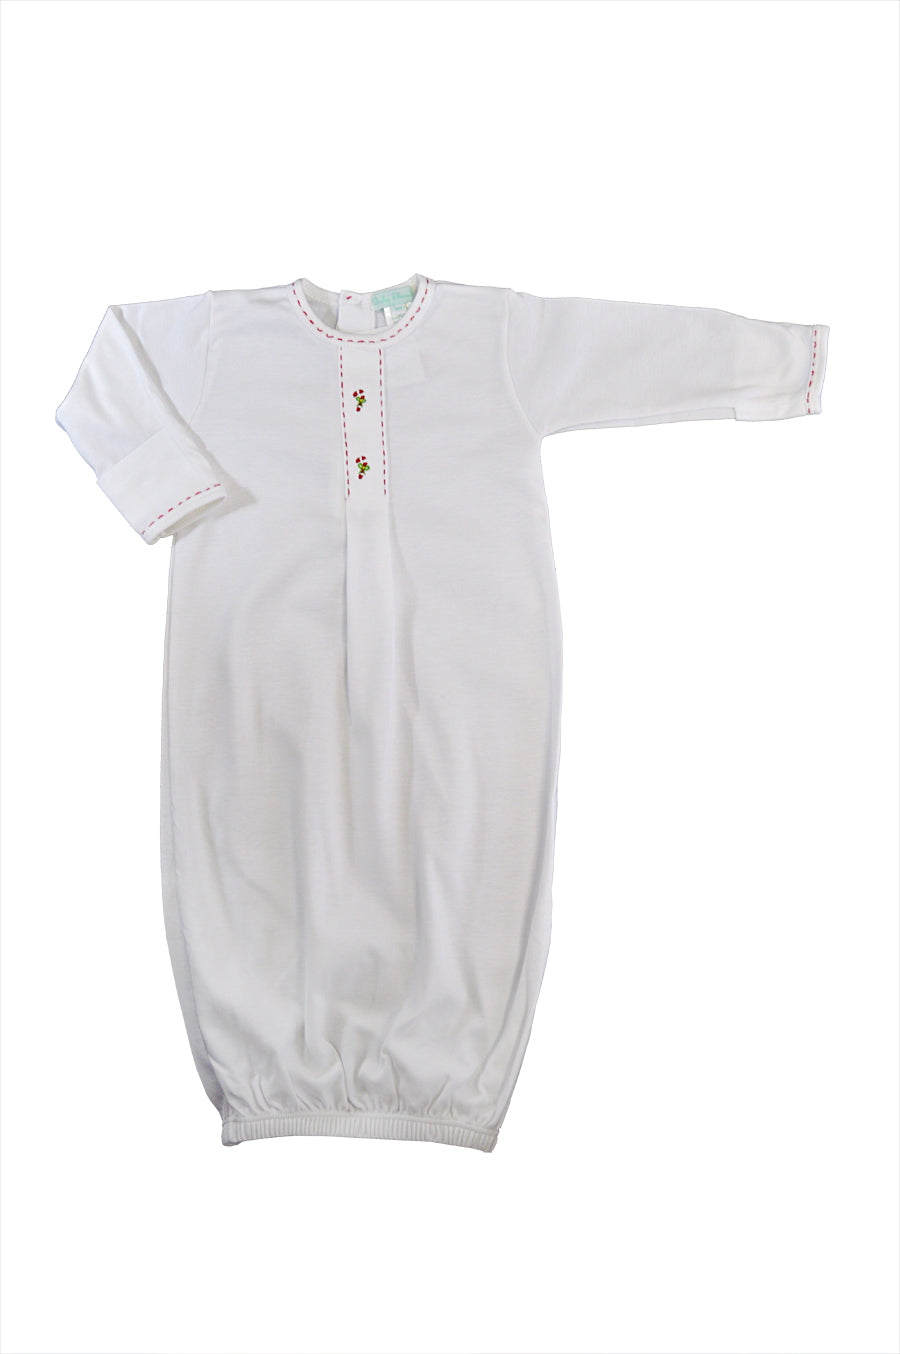 Baby Boy's Christmas Candy Cane Daygown - Little Threads Inc. Children's Clothing